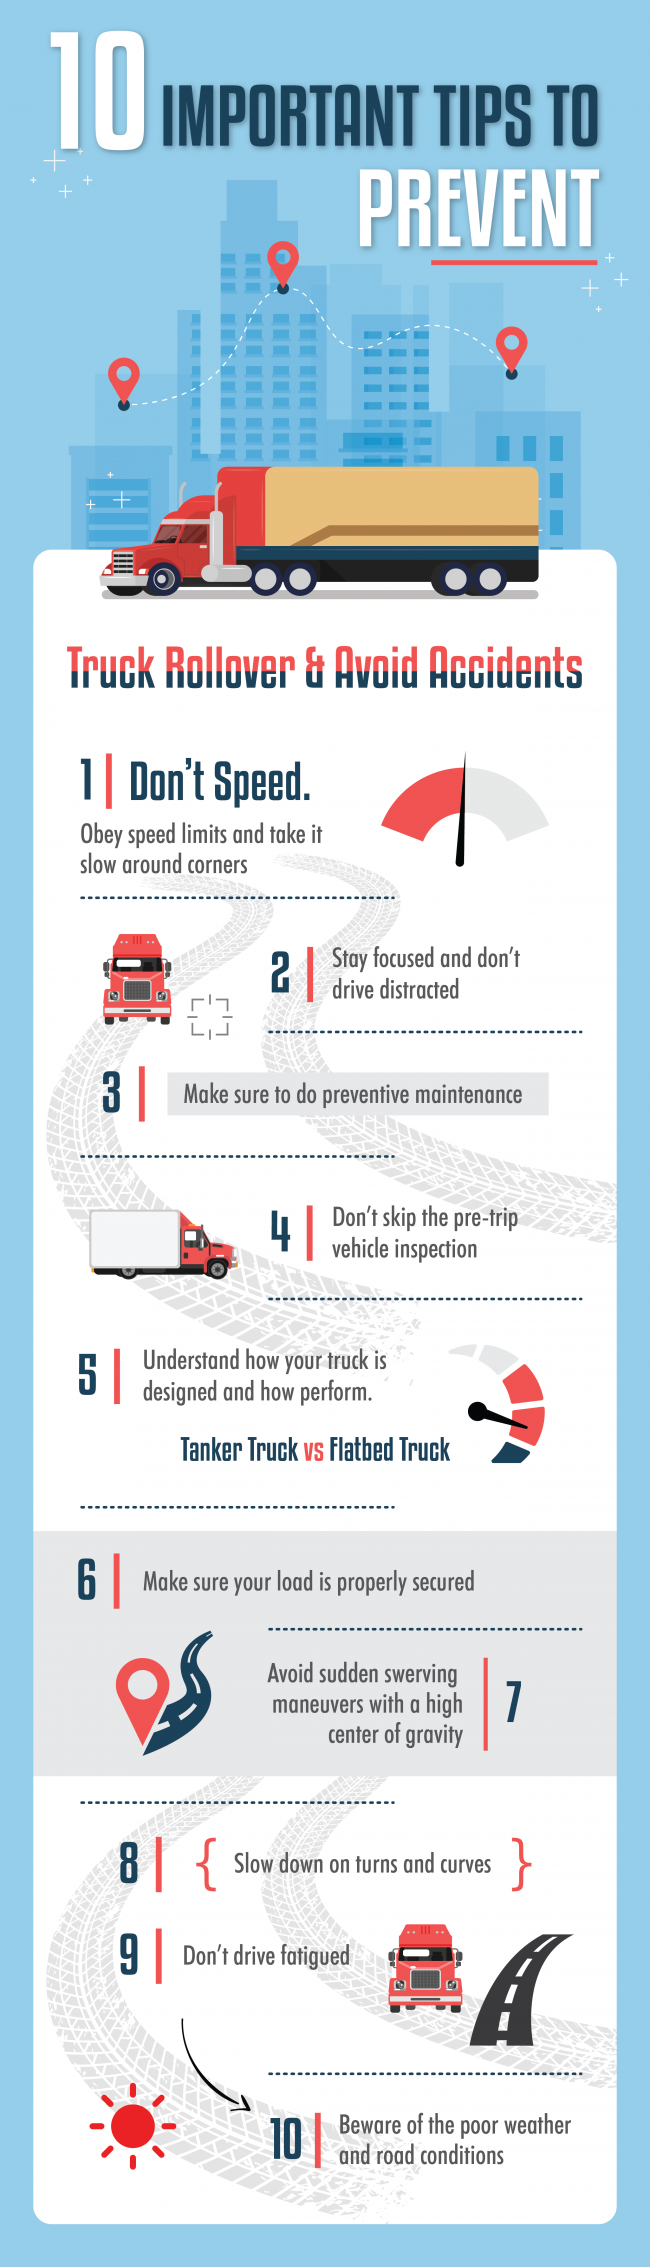 Prevent Truck Rollover and Avoid Accidents